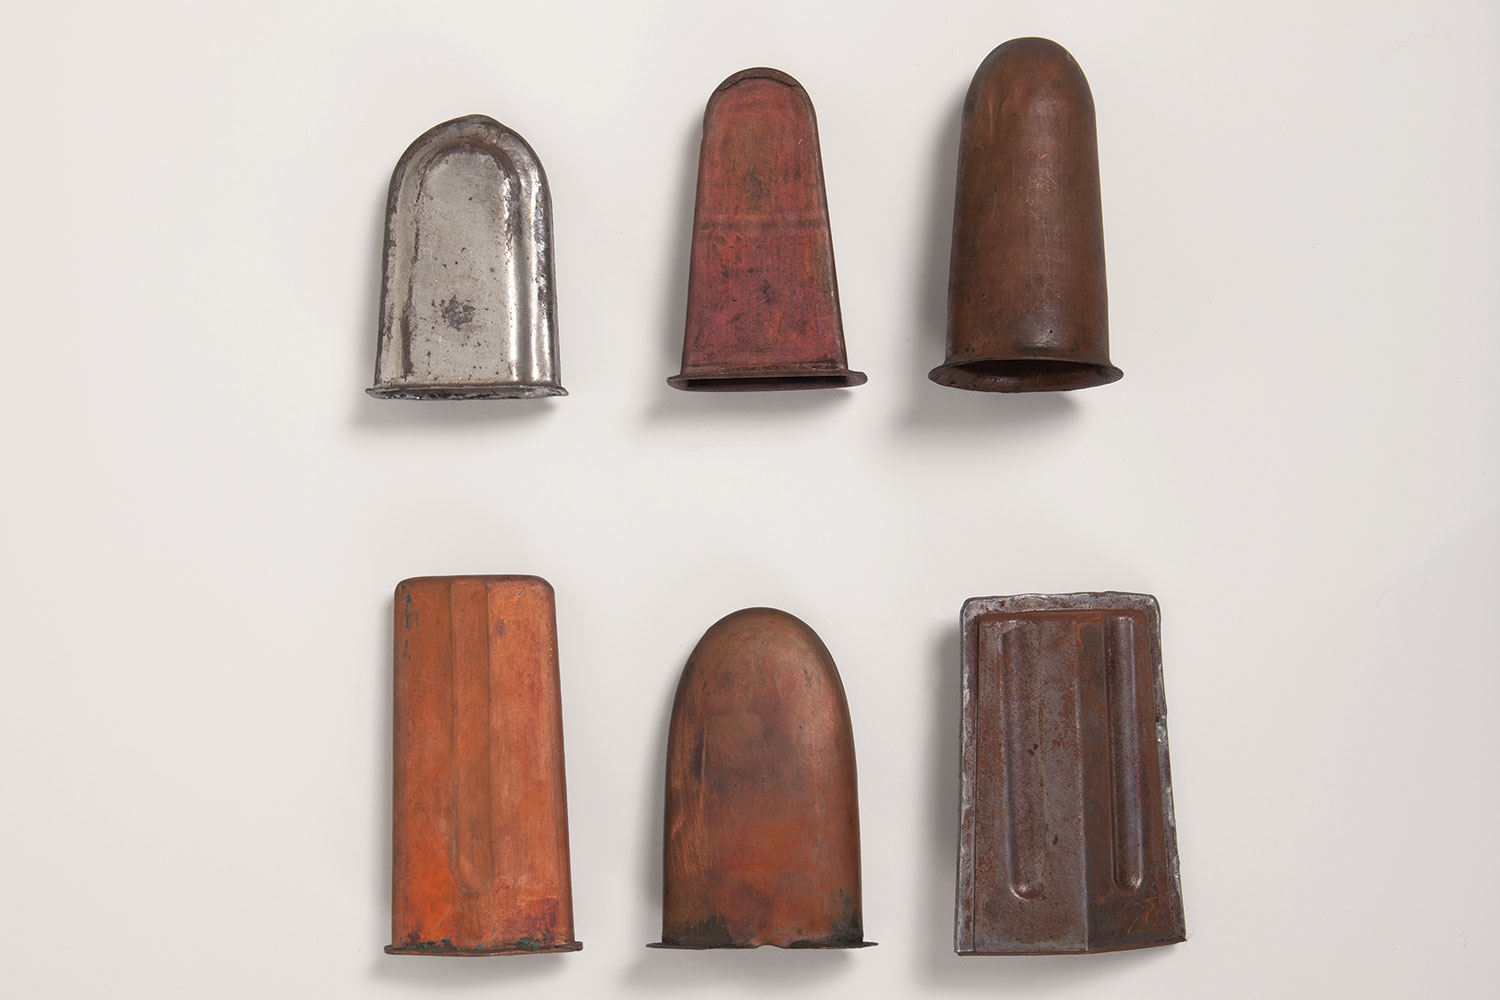 Paddle pop moulds, made between 1950-1960.